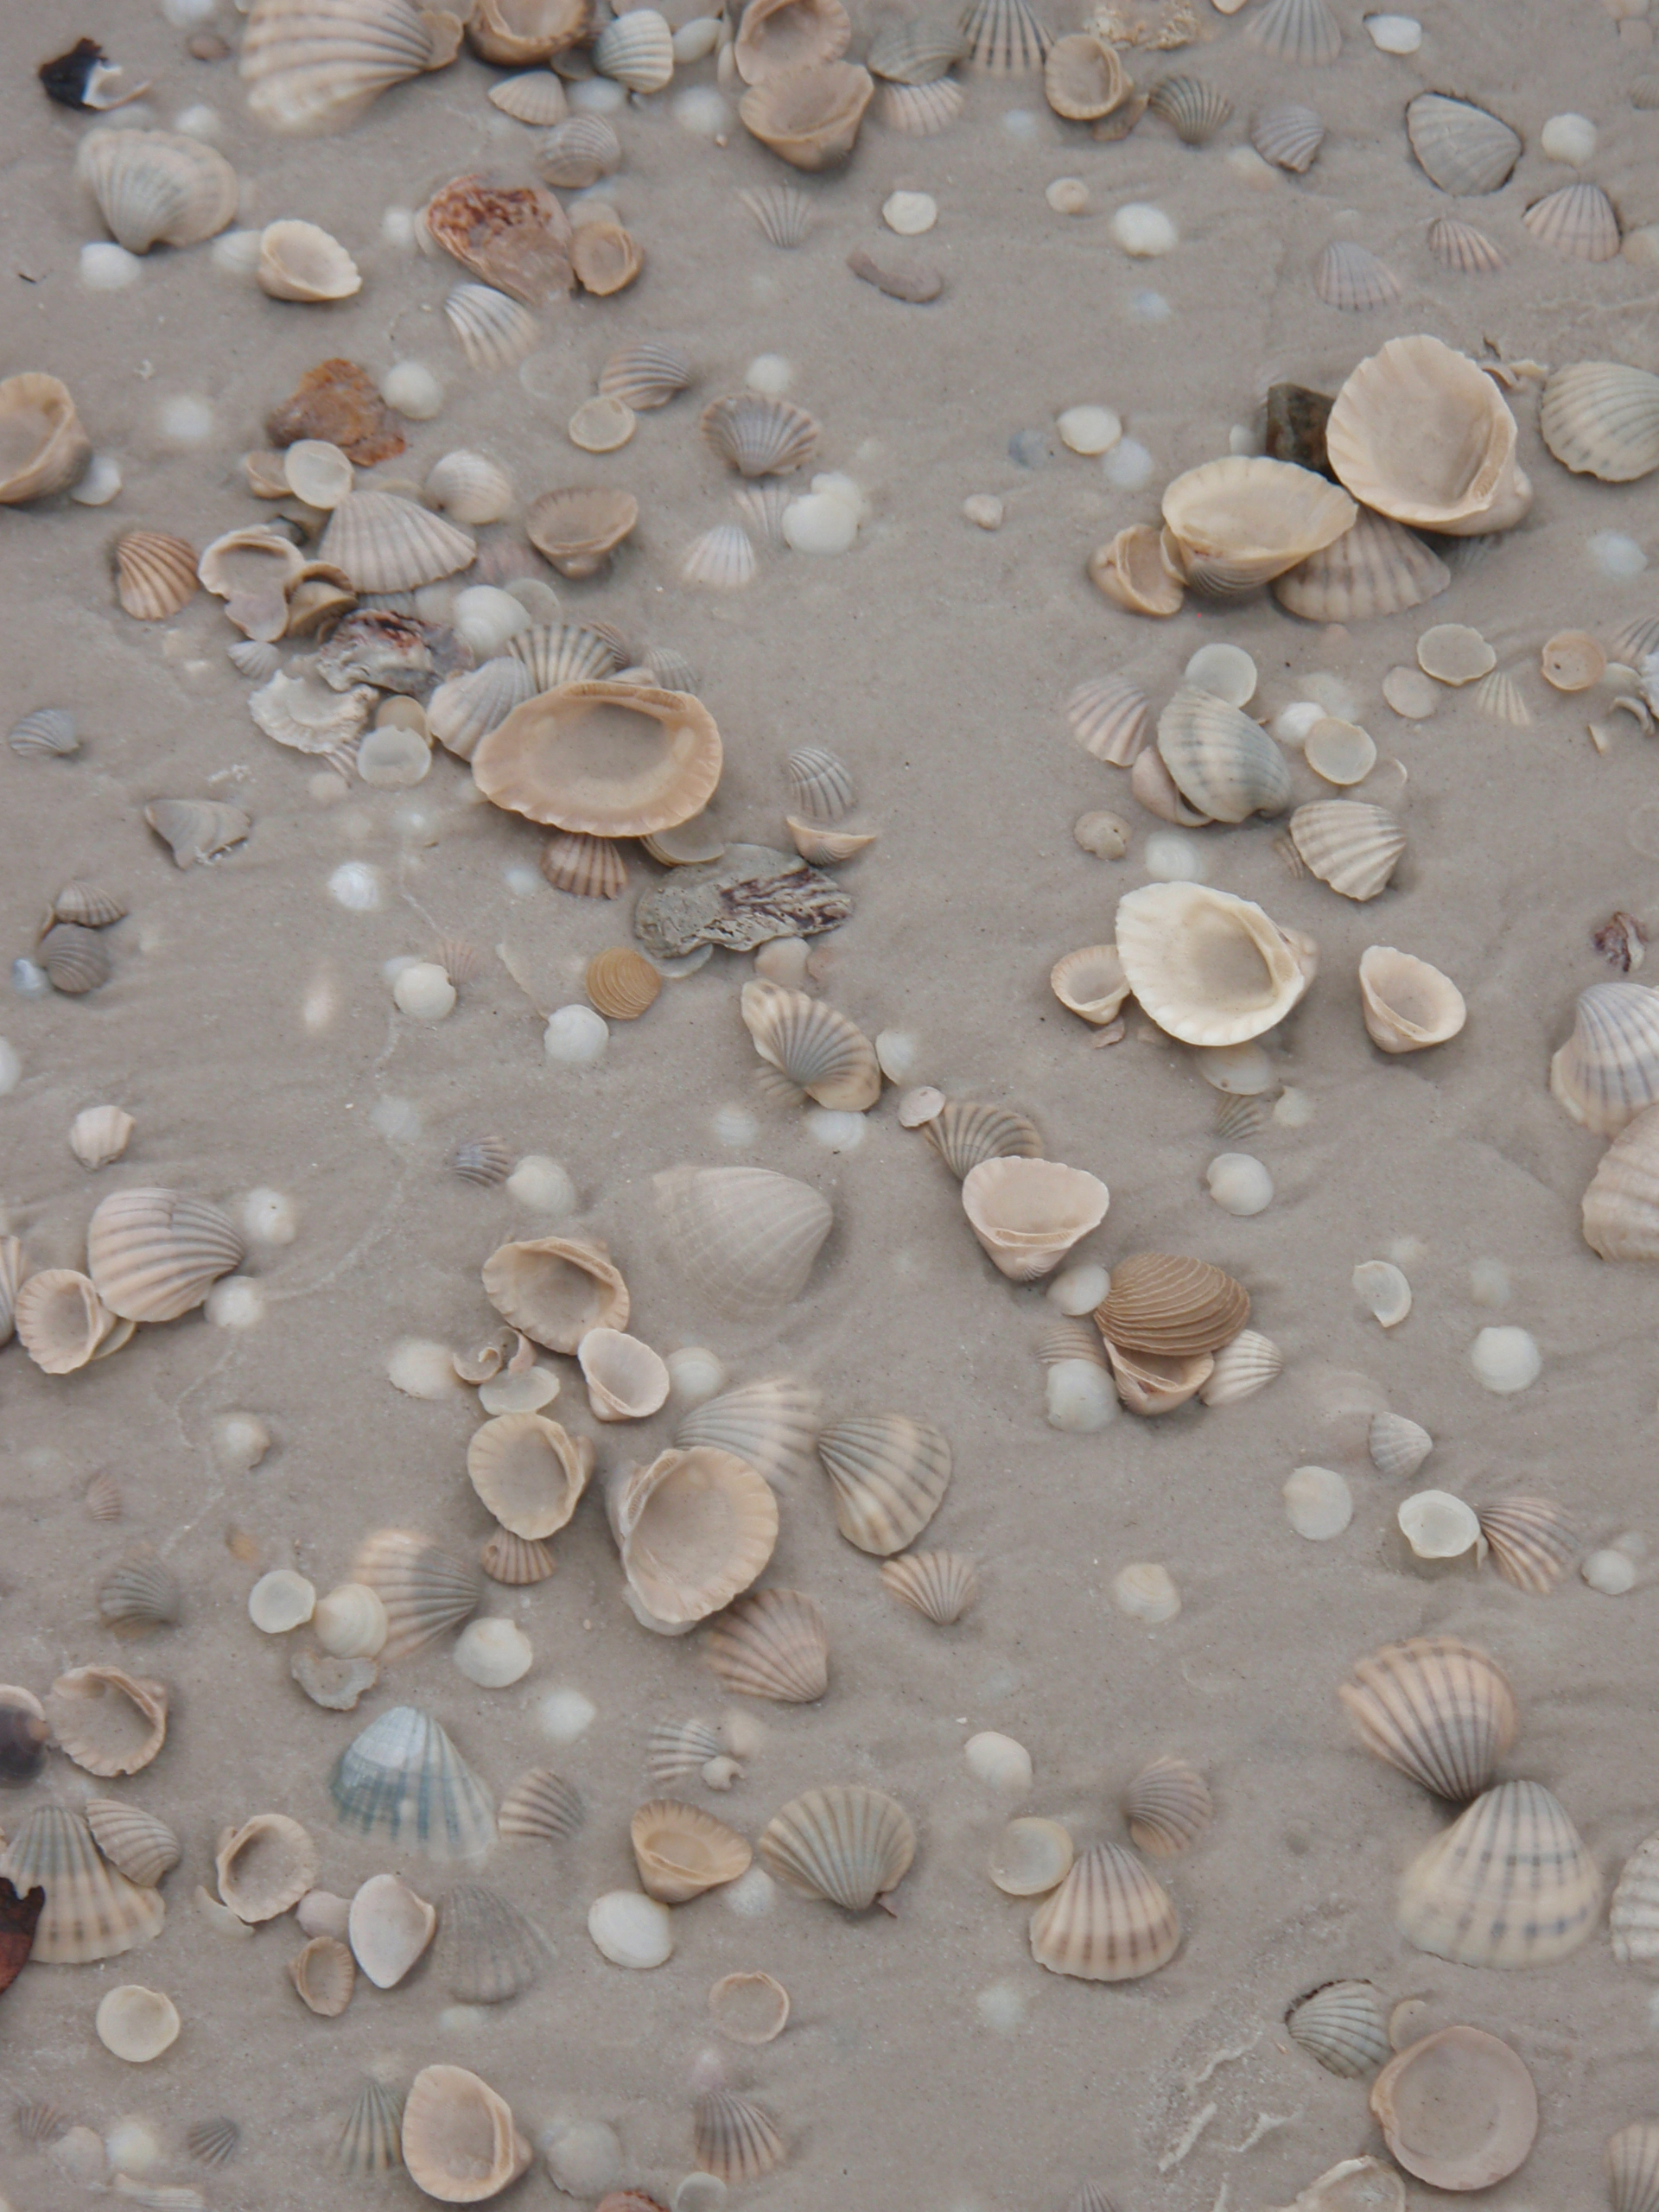 Shells on the Beach; Port Gentil, Gabon; 2010